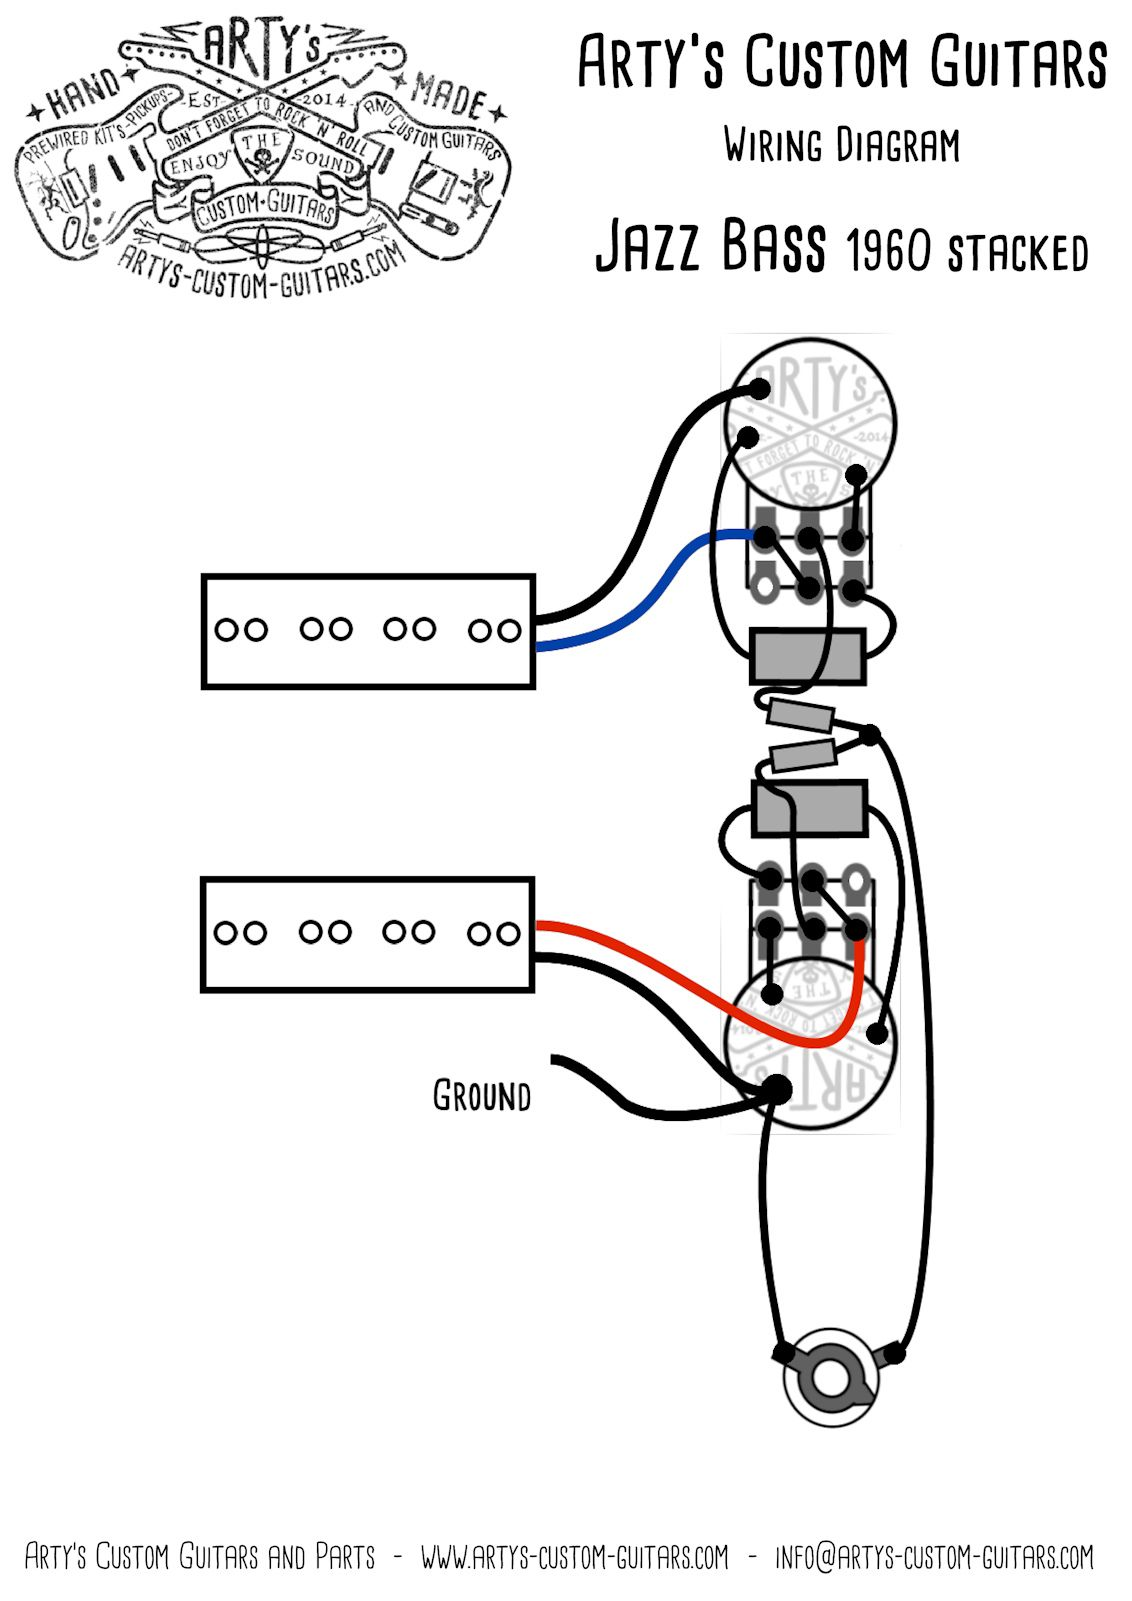 medium resolution of arty s custom guitars vintage pre wired prewired kit wiring assembly harness arty jazz bass 1960